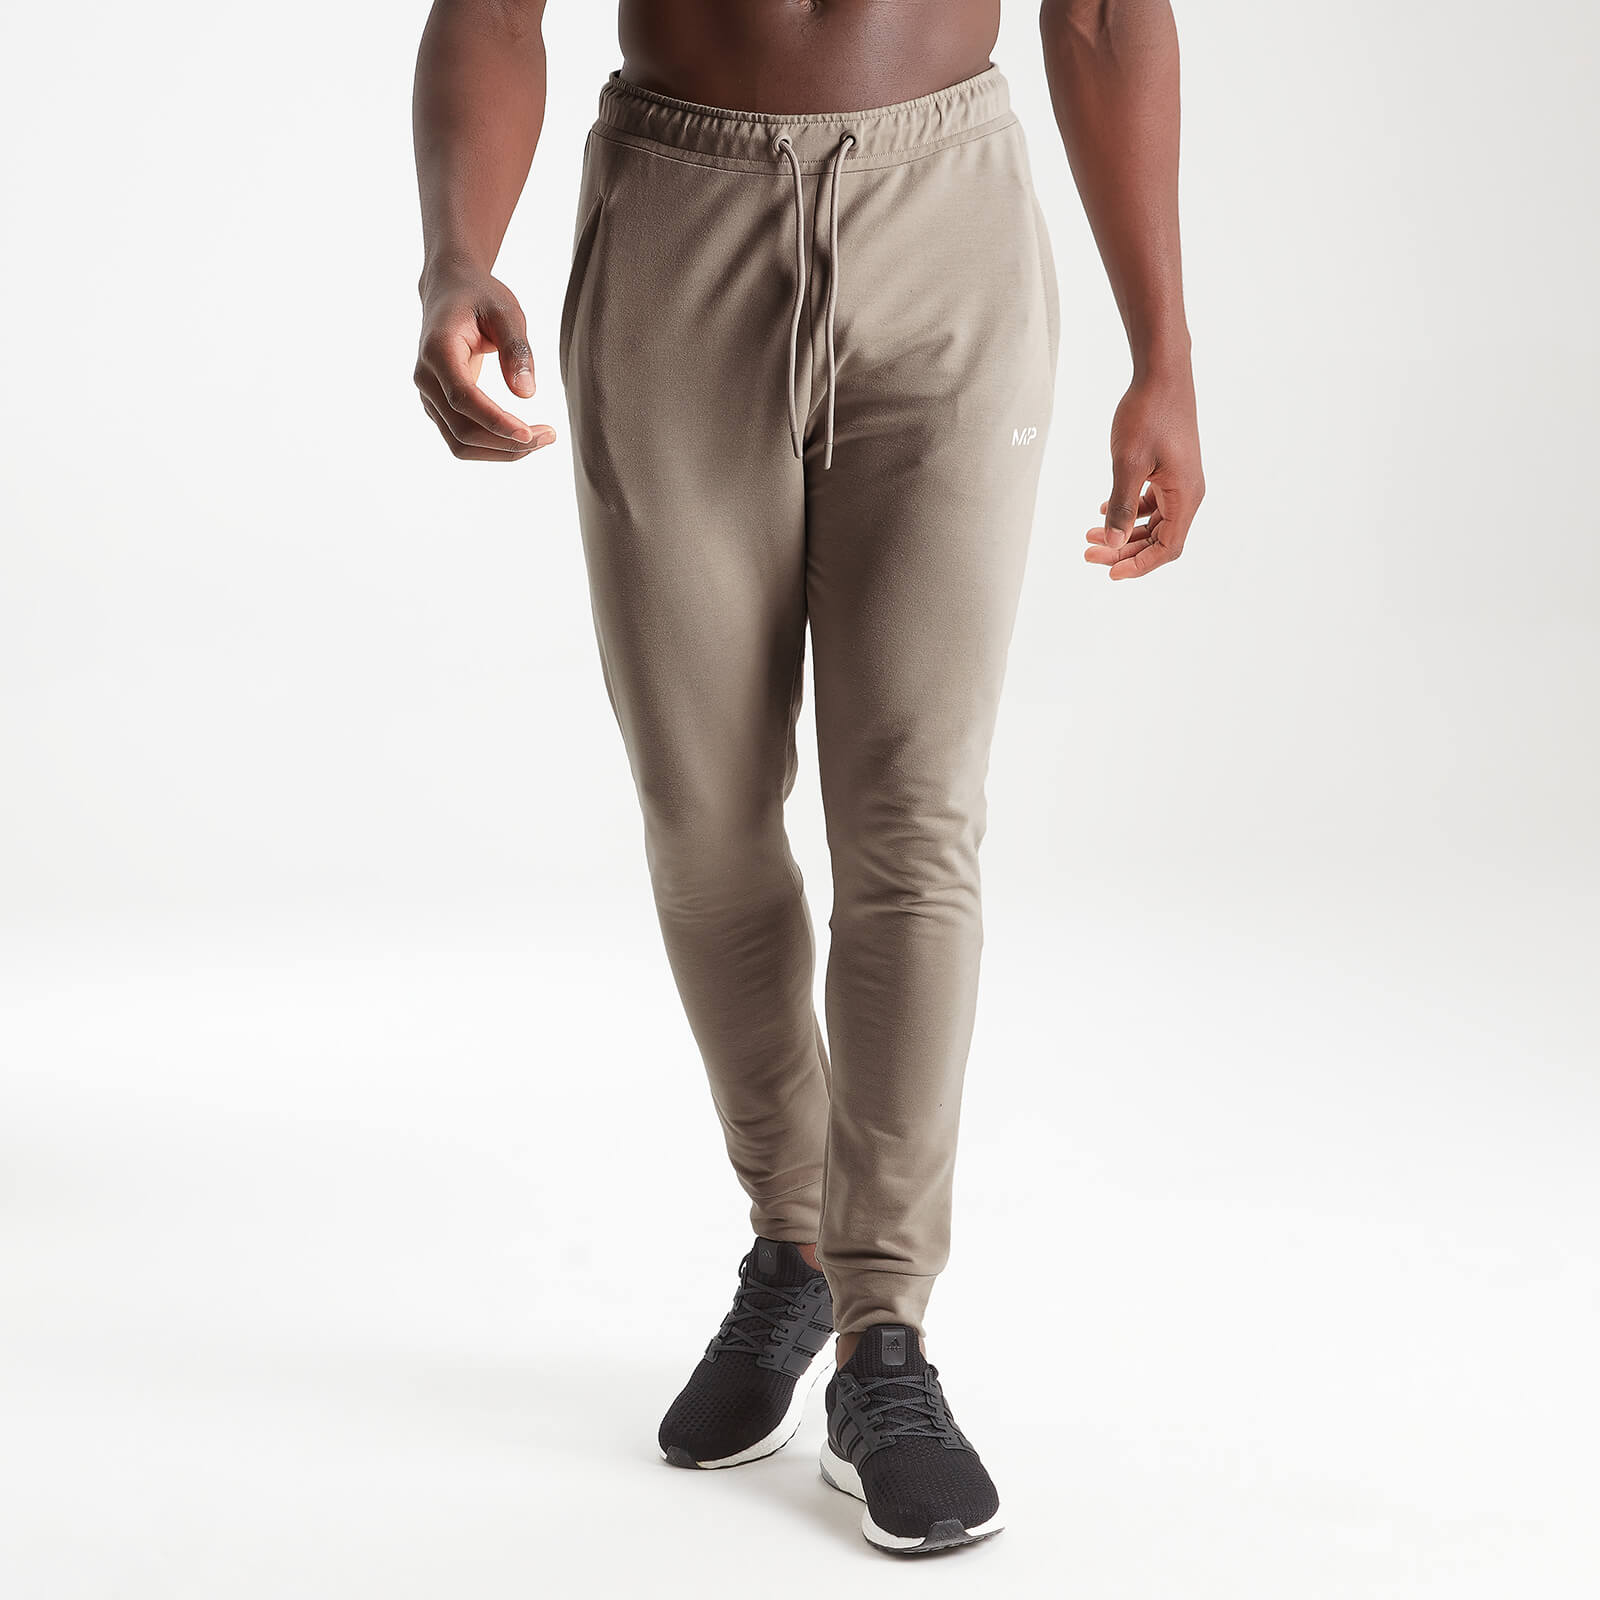 MP Men's Form Slim Fit Joggers - Taupe - XS